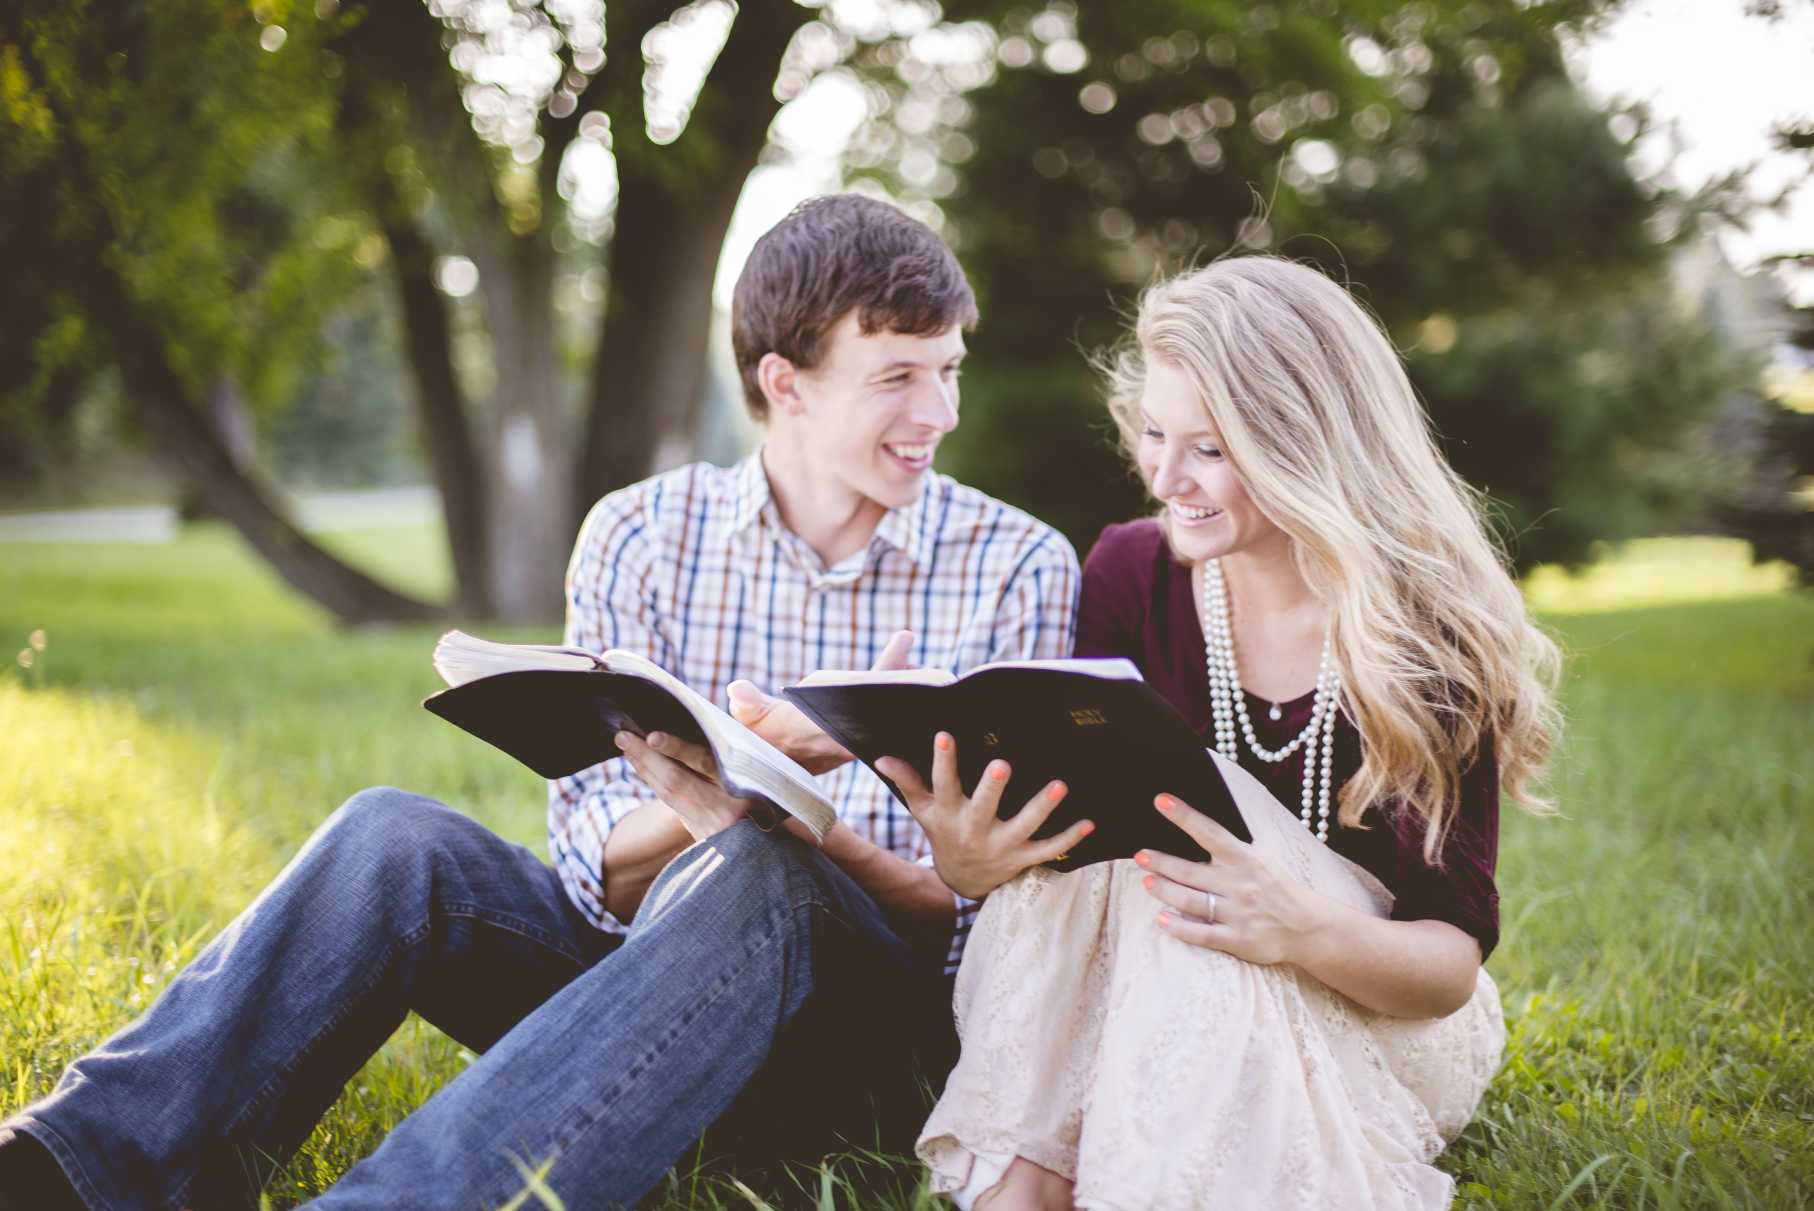 A couple reading the bible together in a garden under sunlight with a blurry background